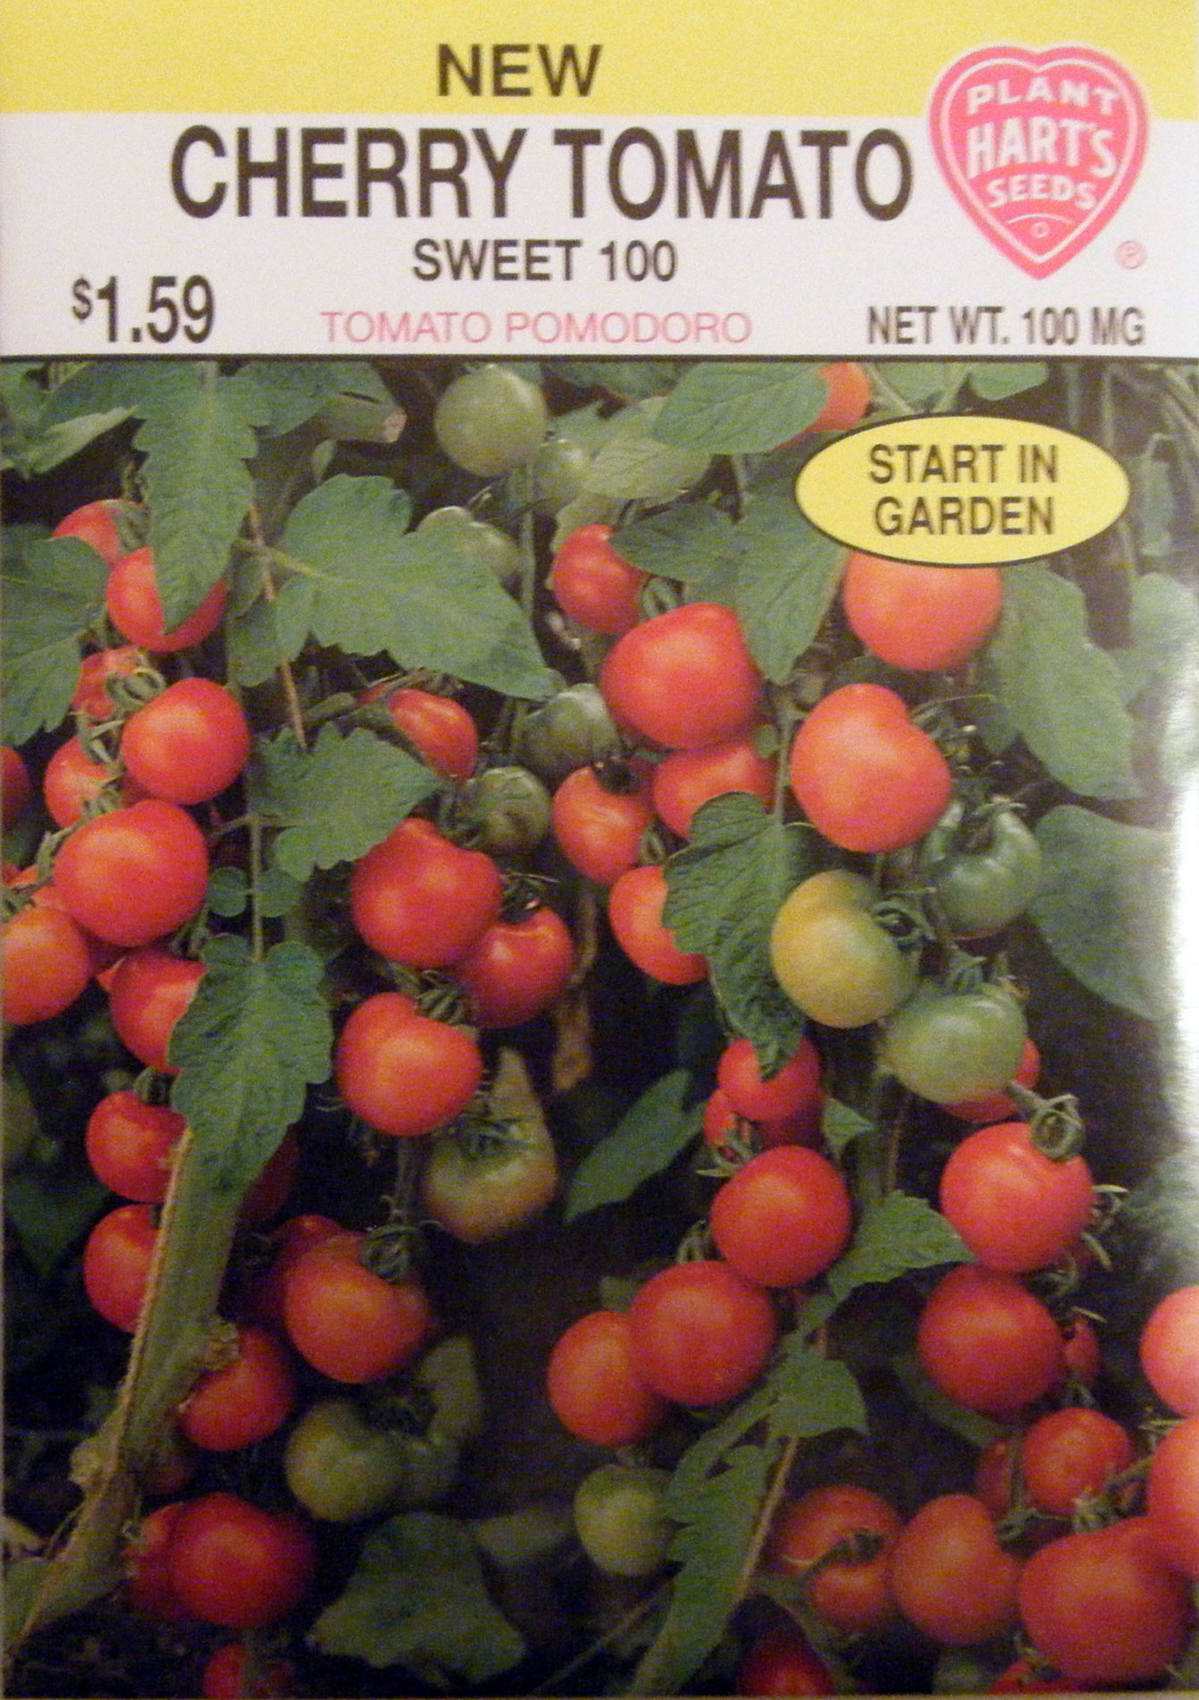 New Variety of Cherry Tomato Available